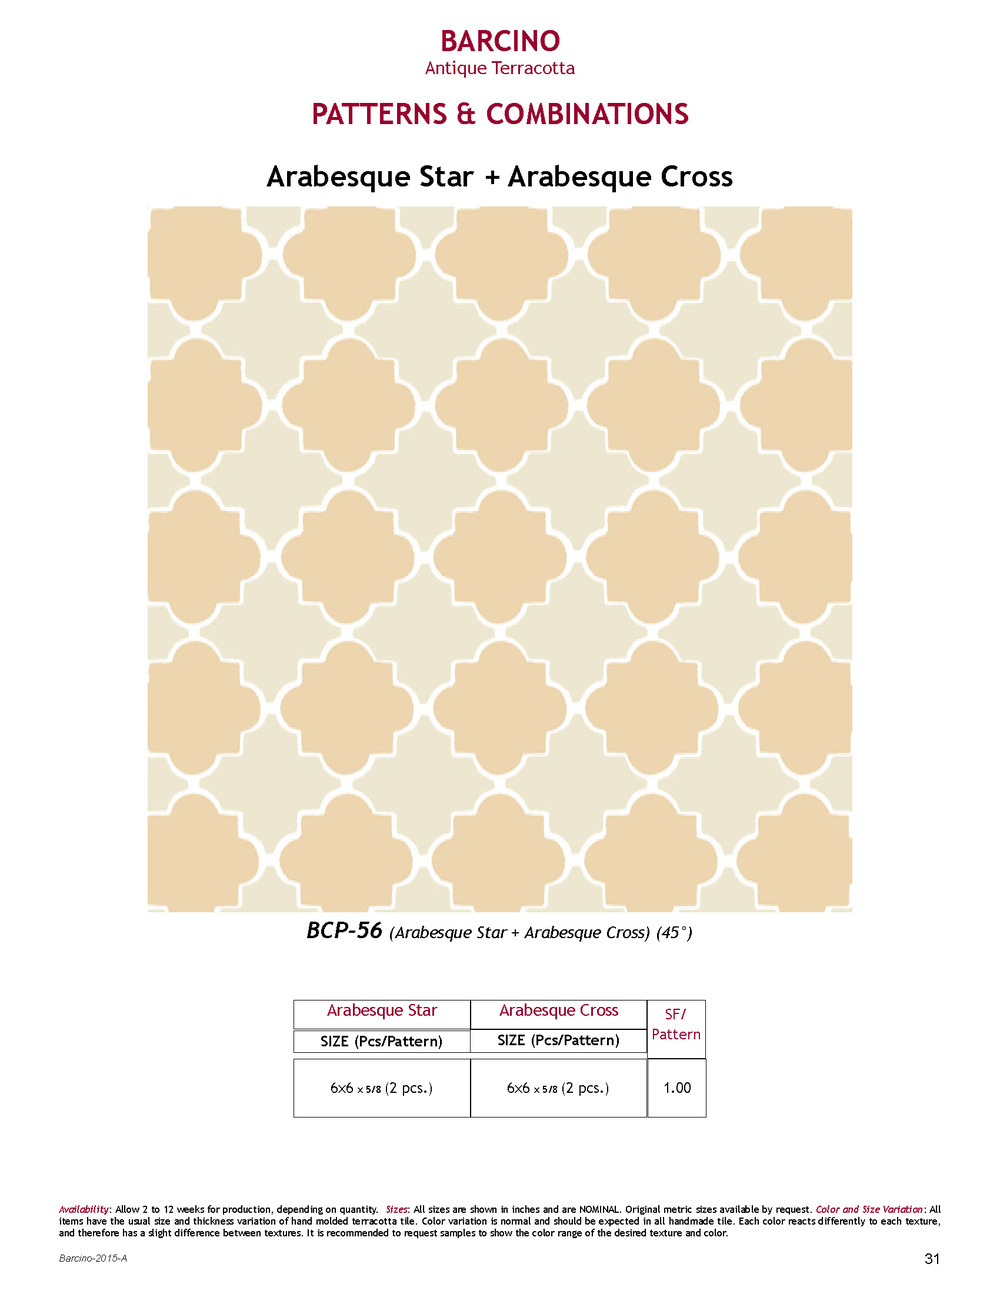 2-Barcino-Patterns&Combinations2015-A_Page_31.jpg